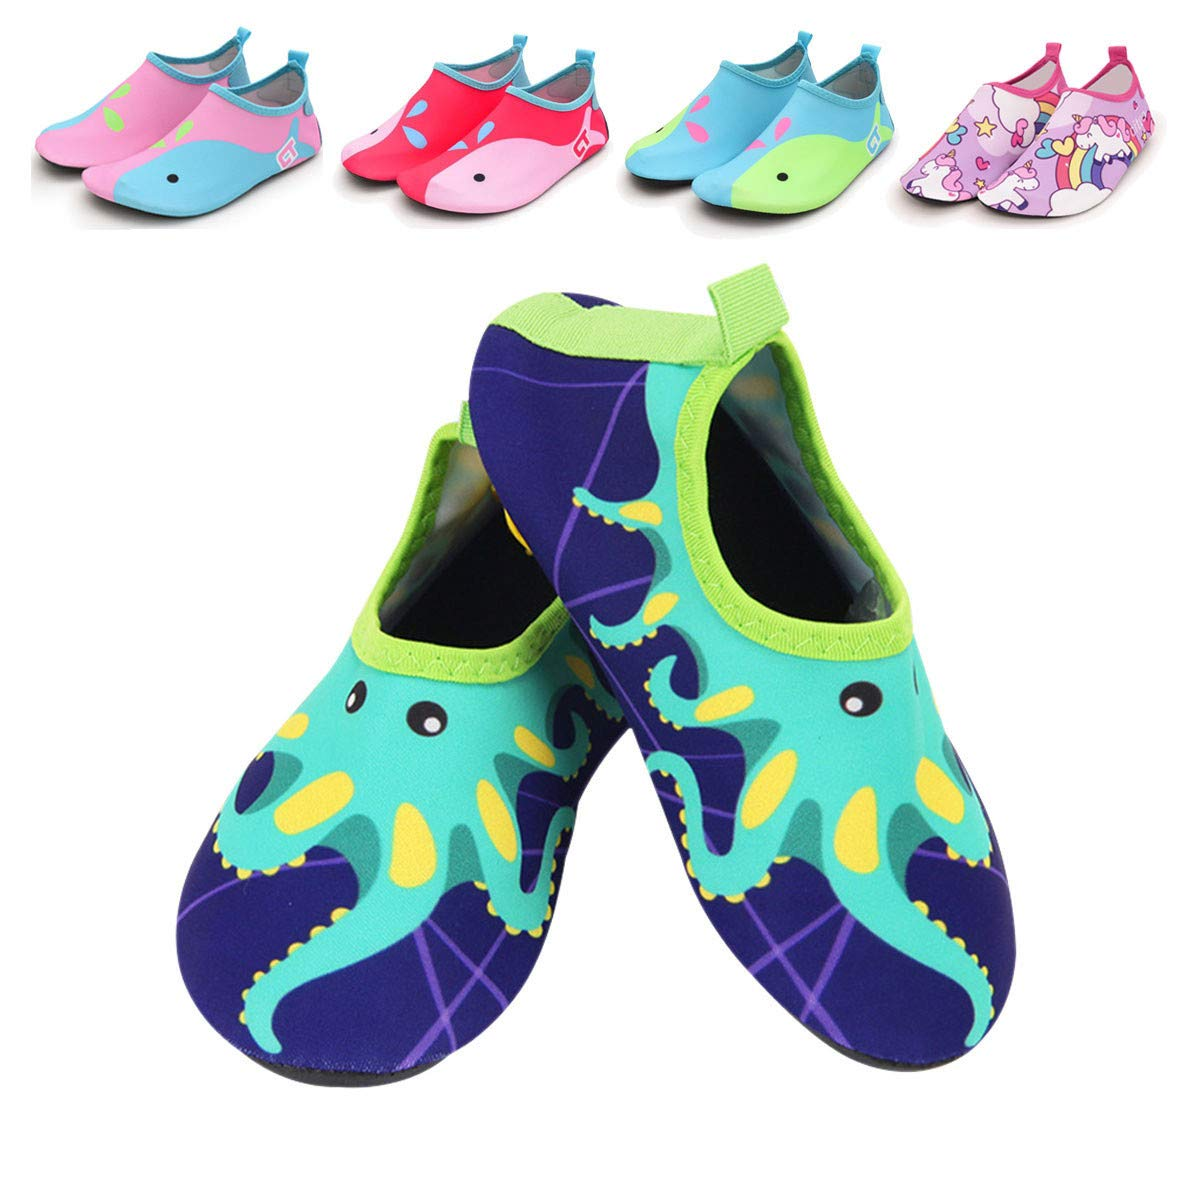 BENHERO Baby Boys and Girls Barefoot Swim Water Skin Shoes Quick Dry Non Slip Outdoor Aqua Socks for Beach Pool Sport Surf Boating Sailing Yoga NO.01 Toddler Kids Unisex Water Shoes